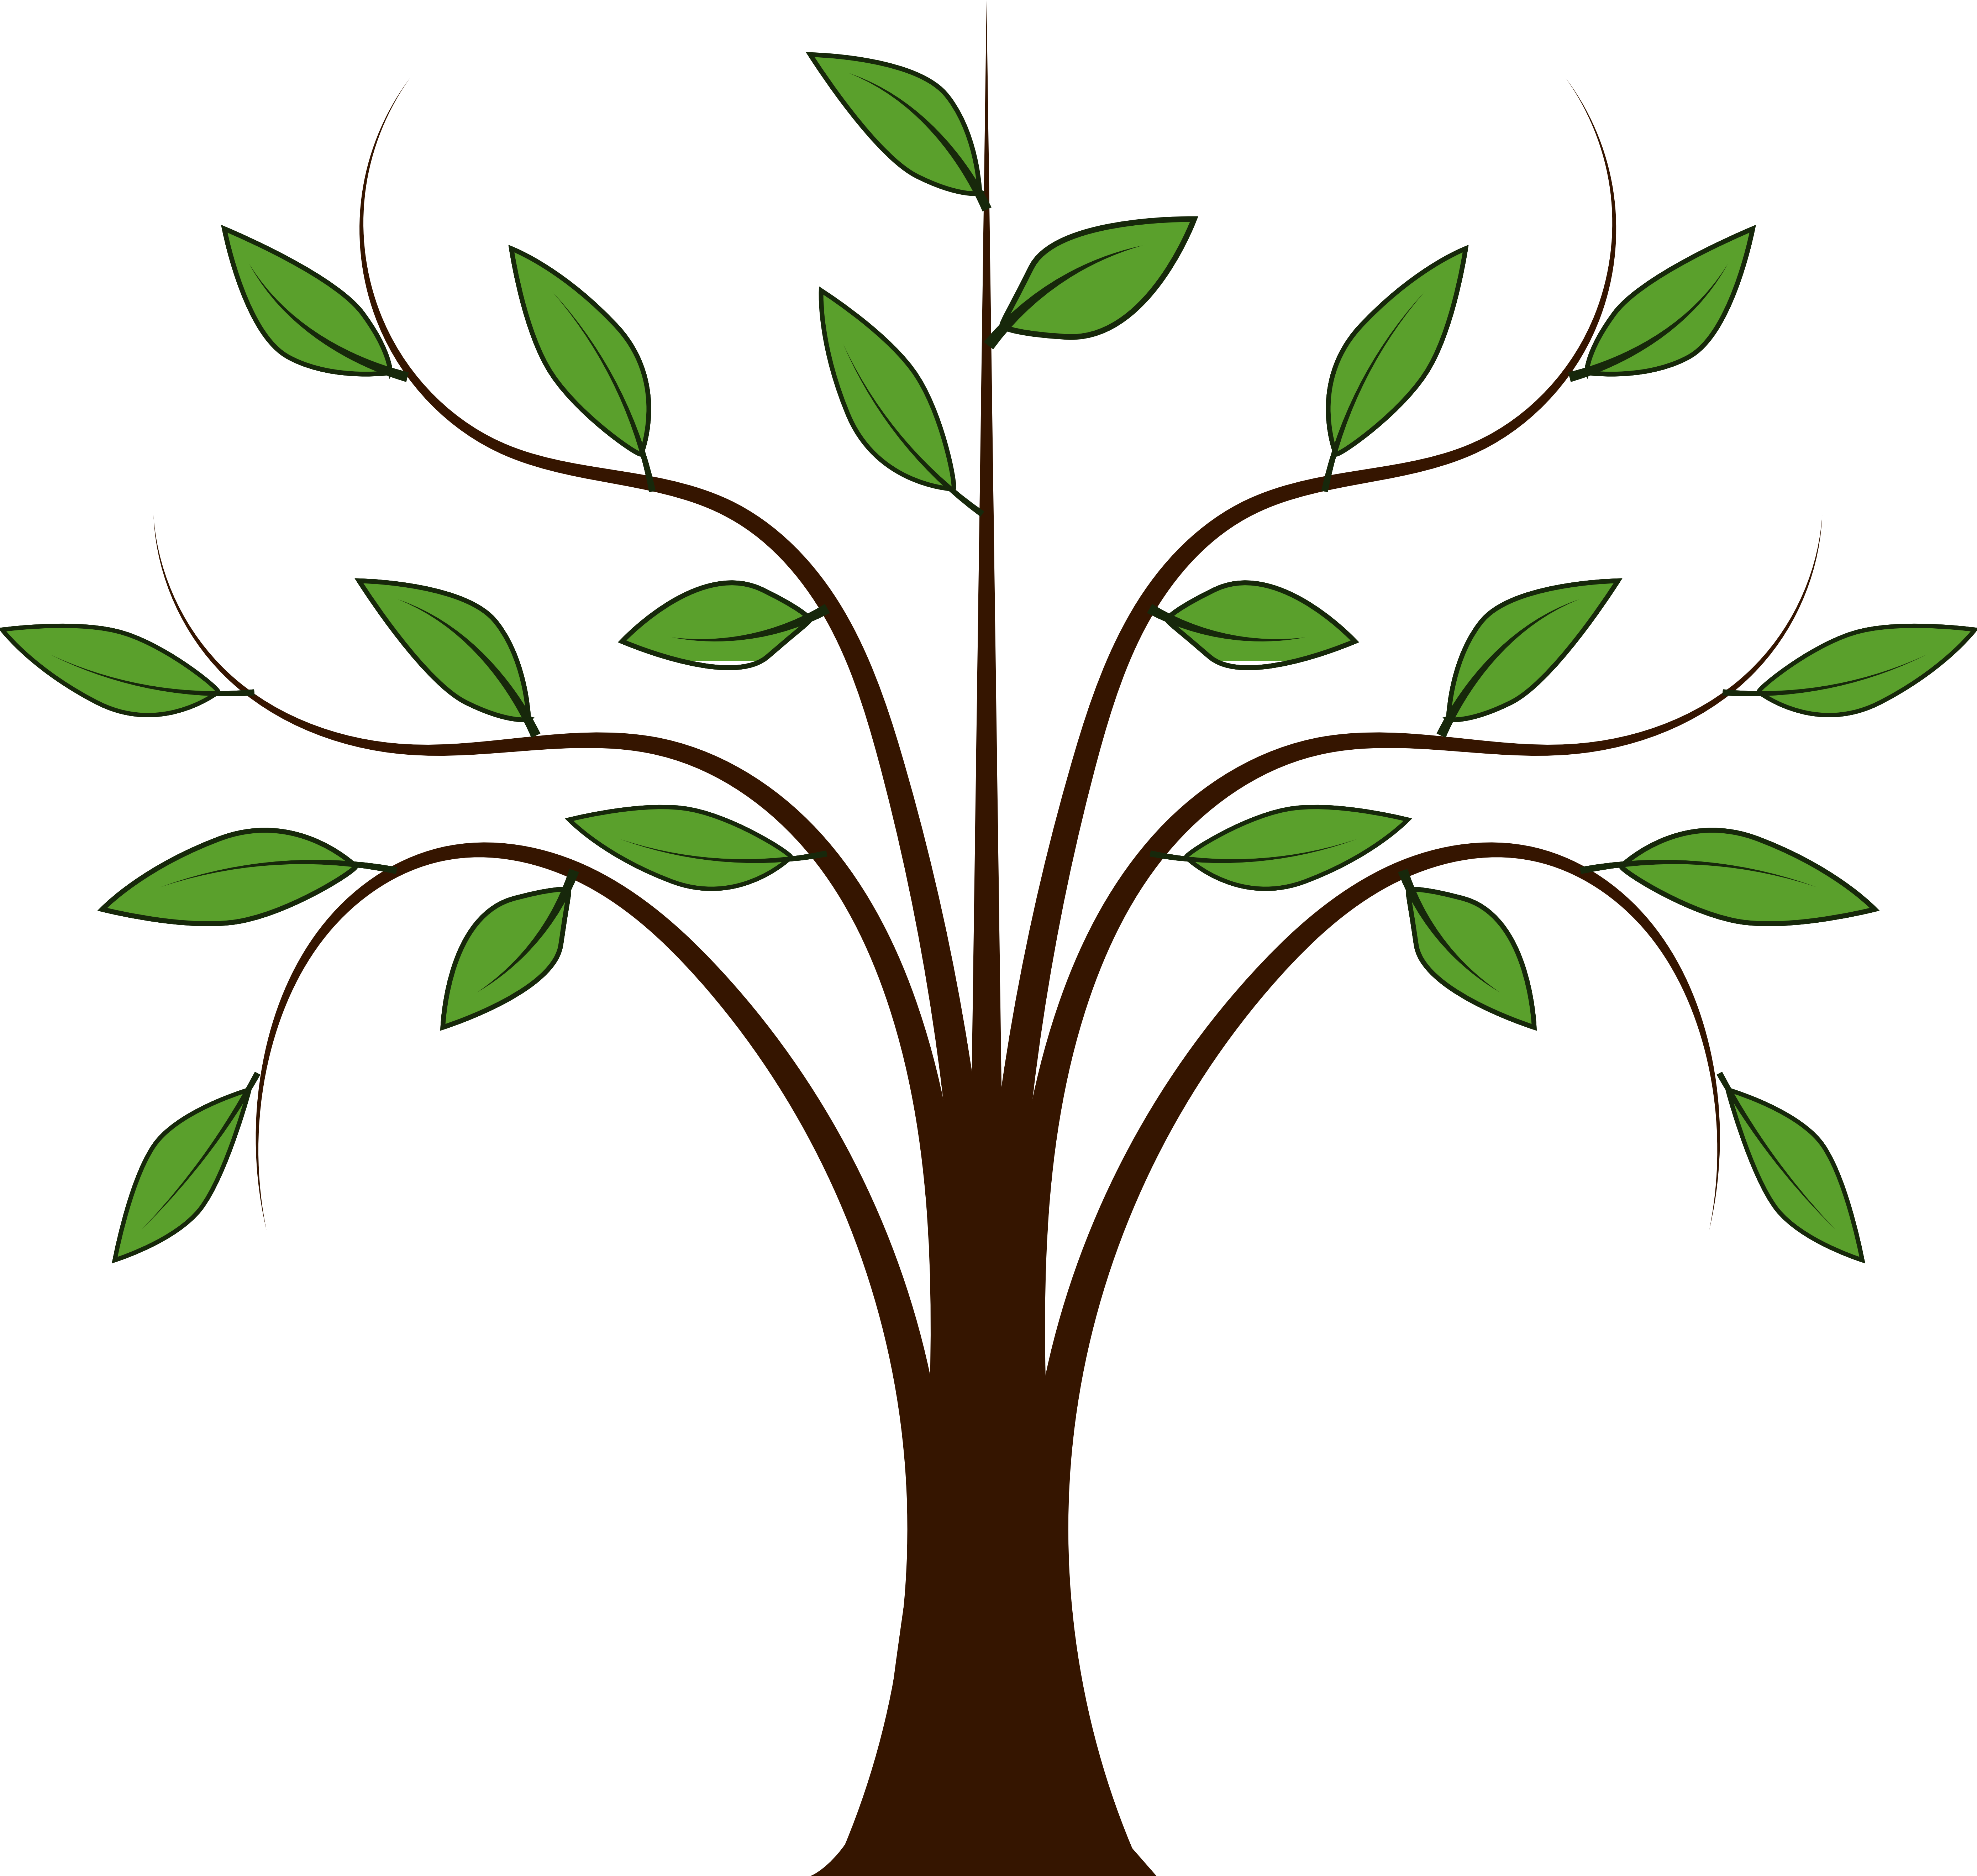 clipart downloads · clipart family · clipart tree